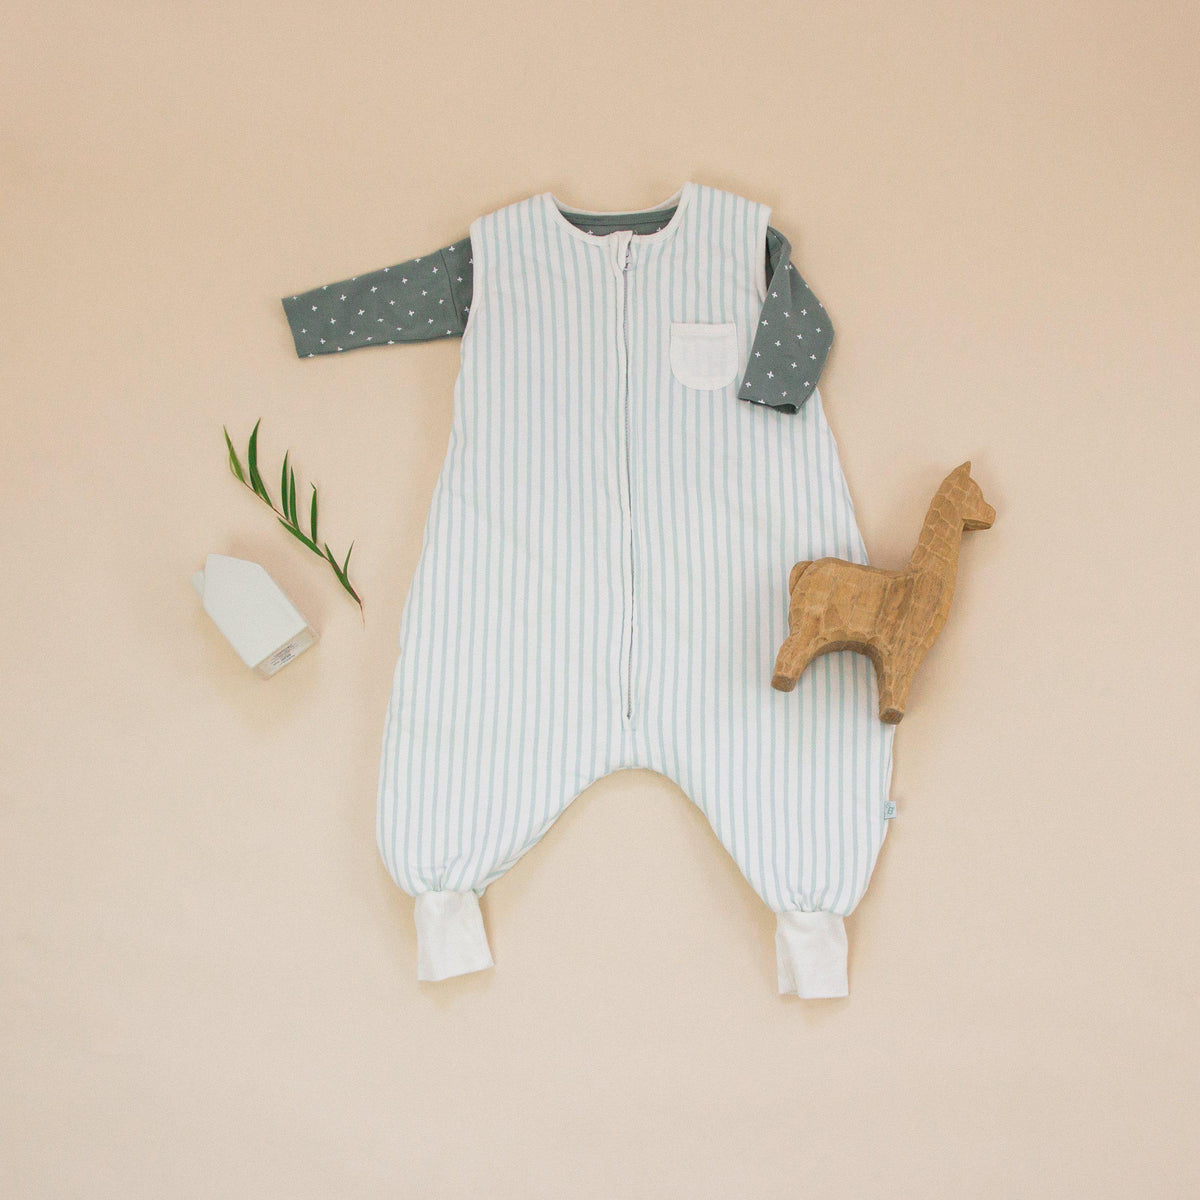 Striped Minty Green Dreamsuit - 1.5 TOG Toddler Sleep Sack With Legs - Tealbee